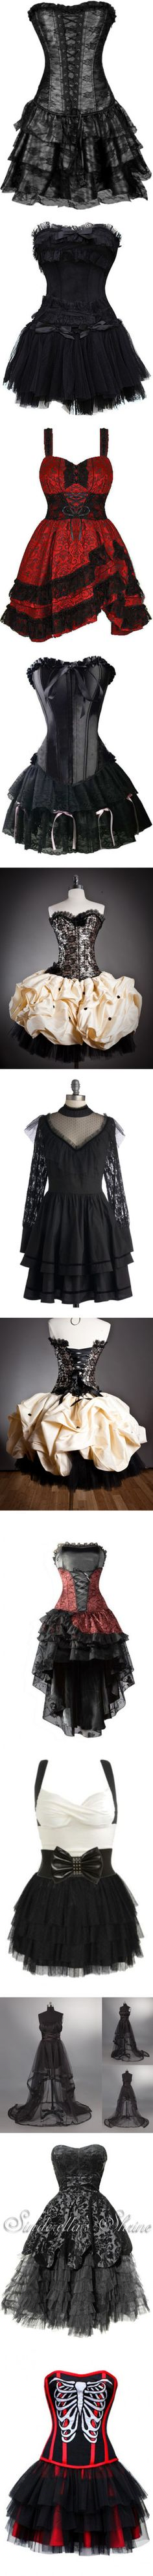 Corseted Dresses by jwpixie on Polyvore featuring women's fashion, intimates, shapewear, dresses, corsets, short dresses, vestidos, corset, lace mini dress and layered lace dress